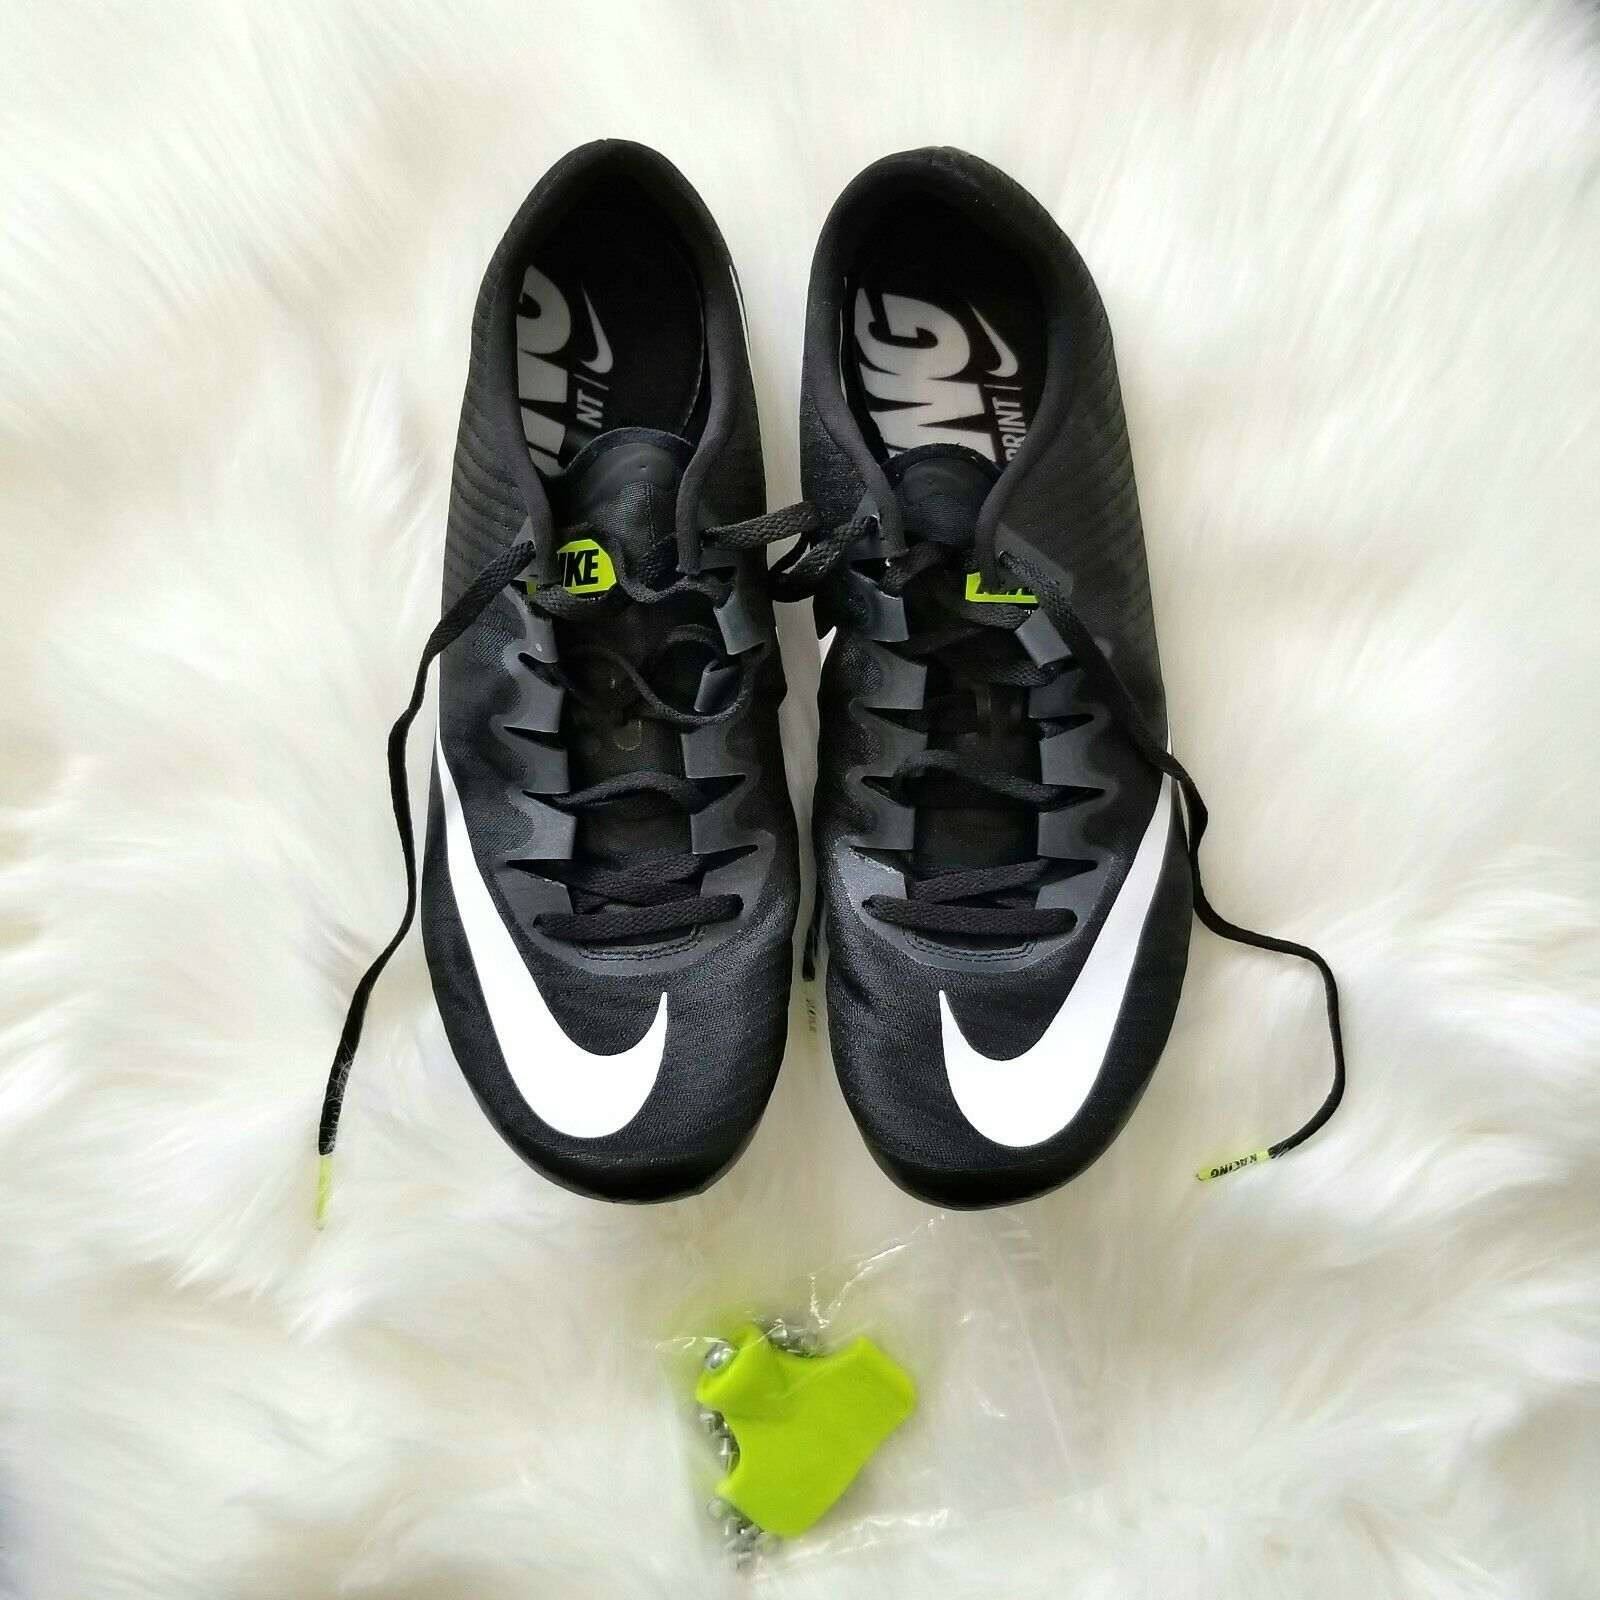 Nike SUPERFLY ELITE Sprinter BLACK WHITE 835996 017 SIZE 11.5 New W O Box